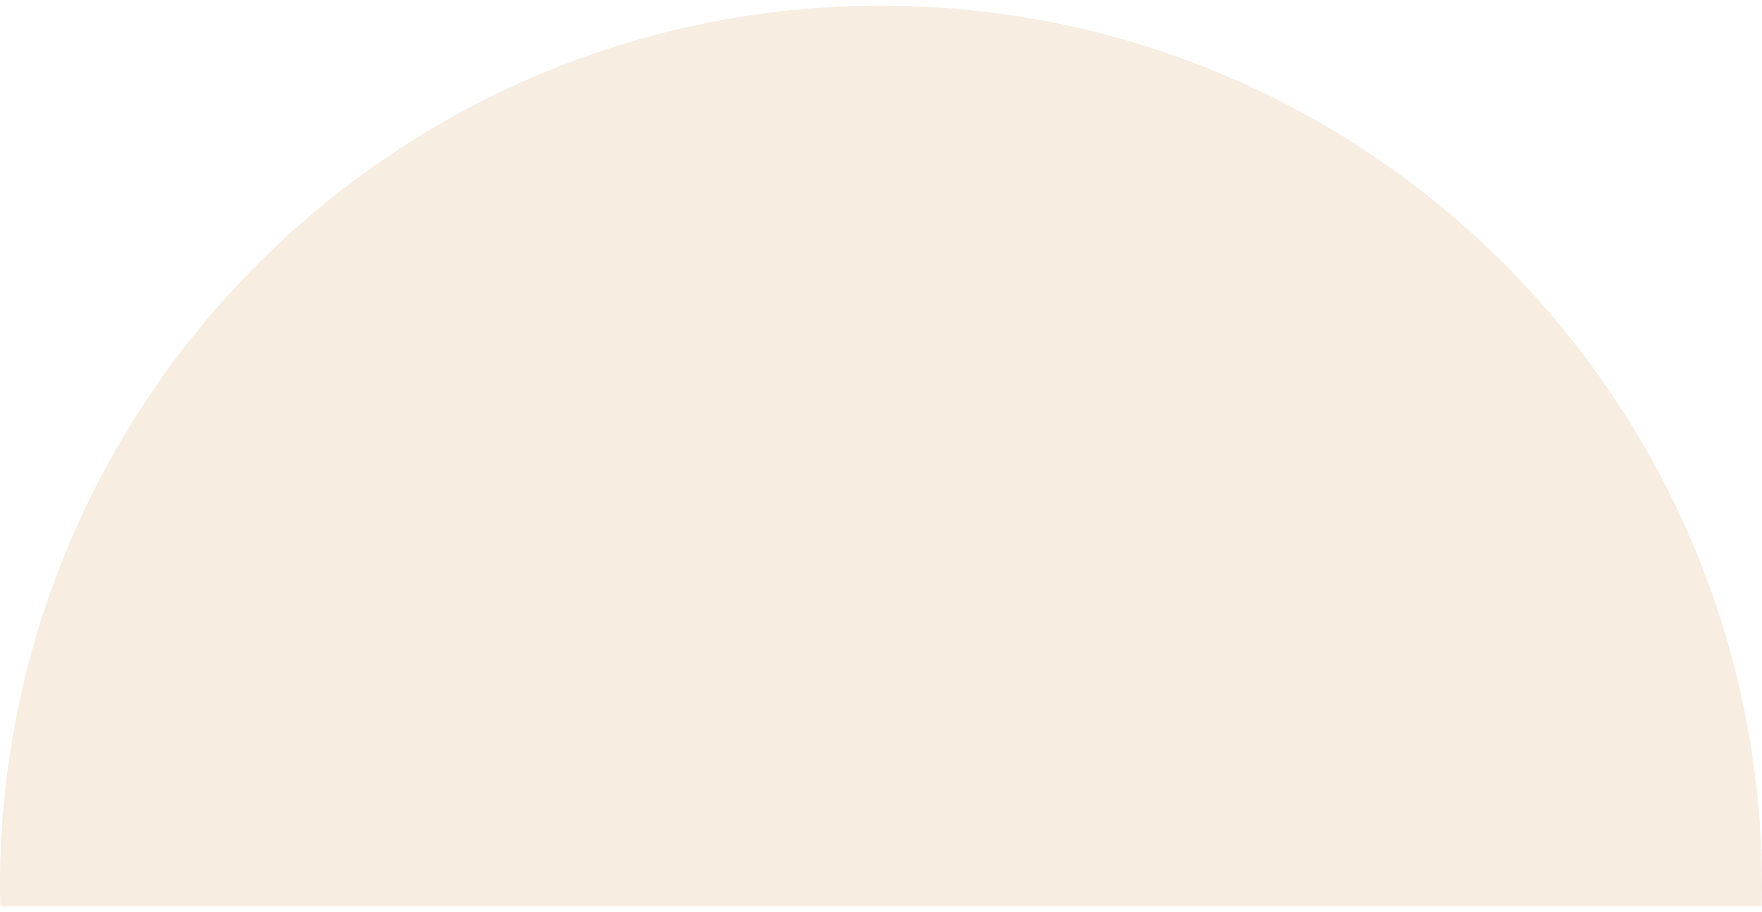 semicircle-beige Clipart illustration in PNG, SVG